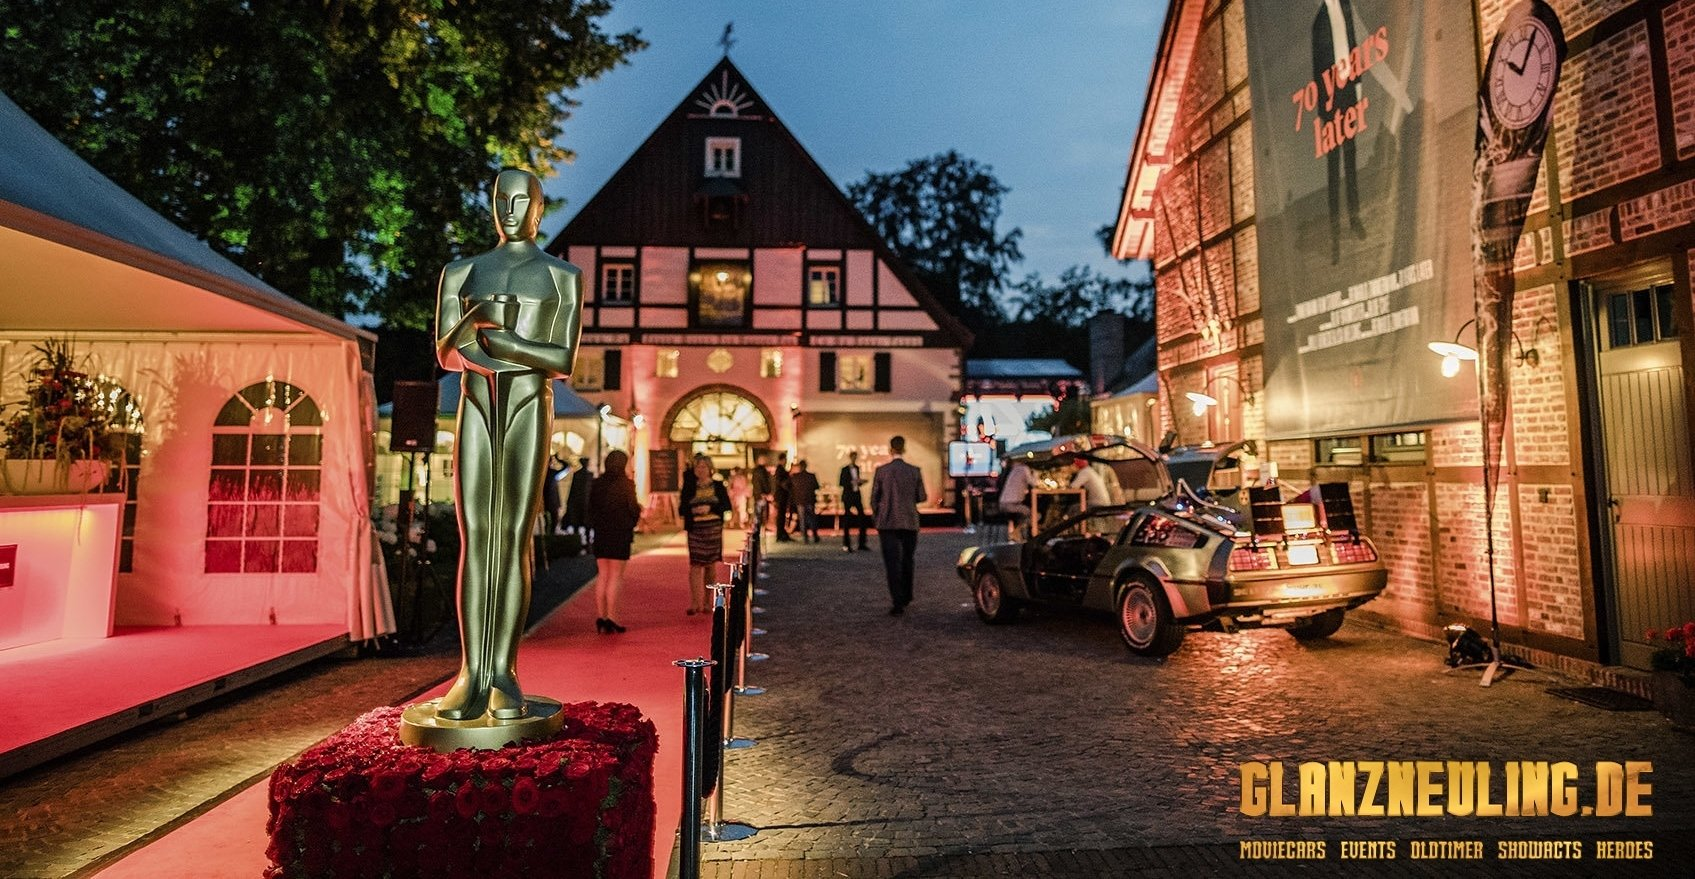 Firmenevent mit Hollywood Thema organisieren